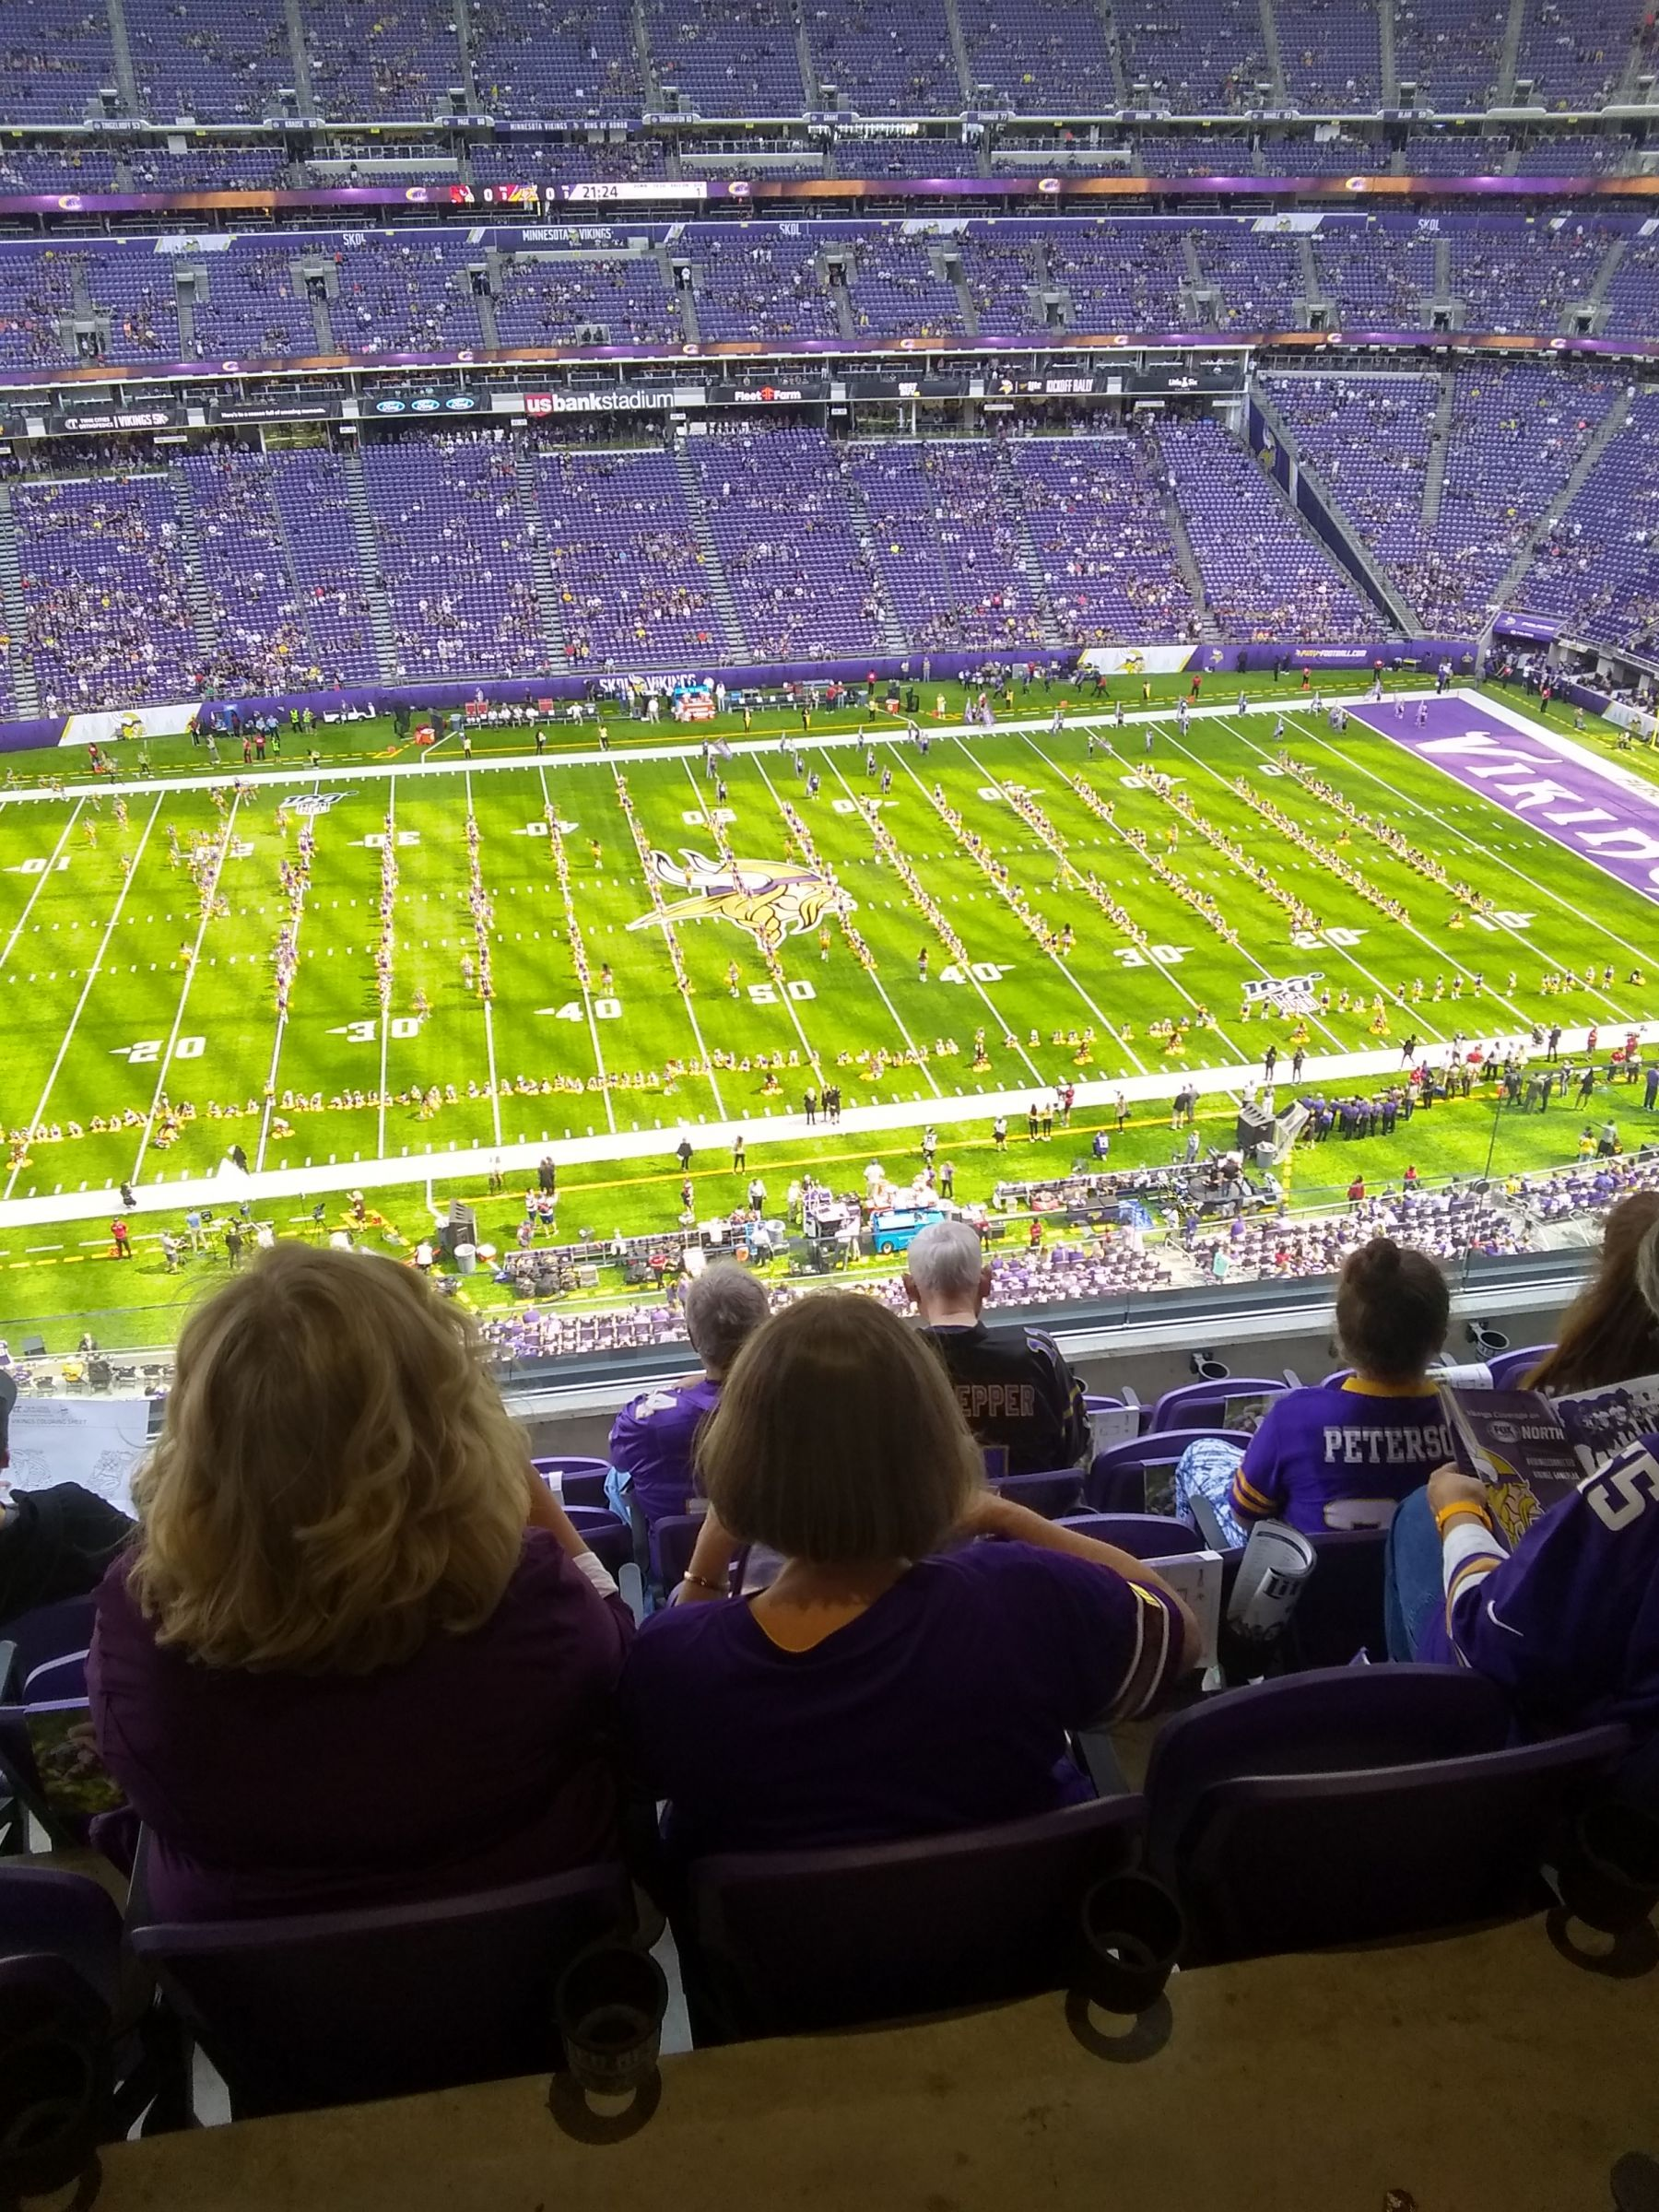 Section 342 seat view